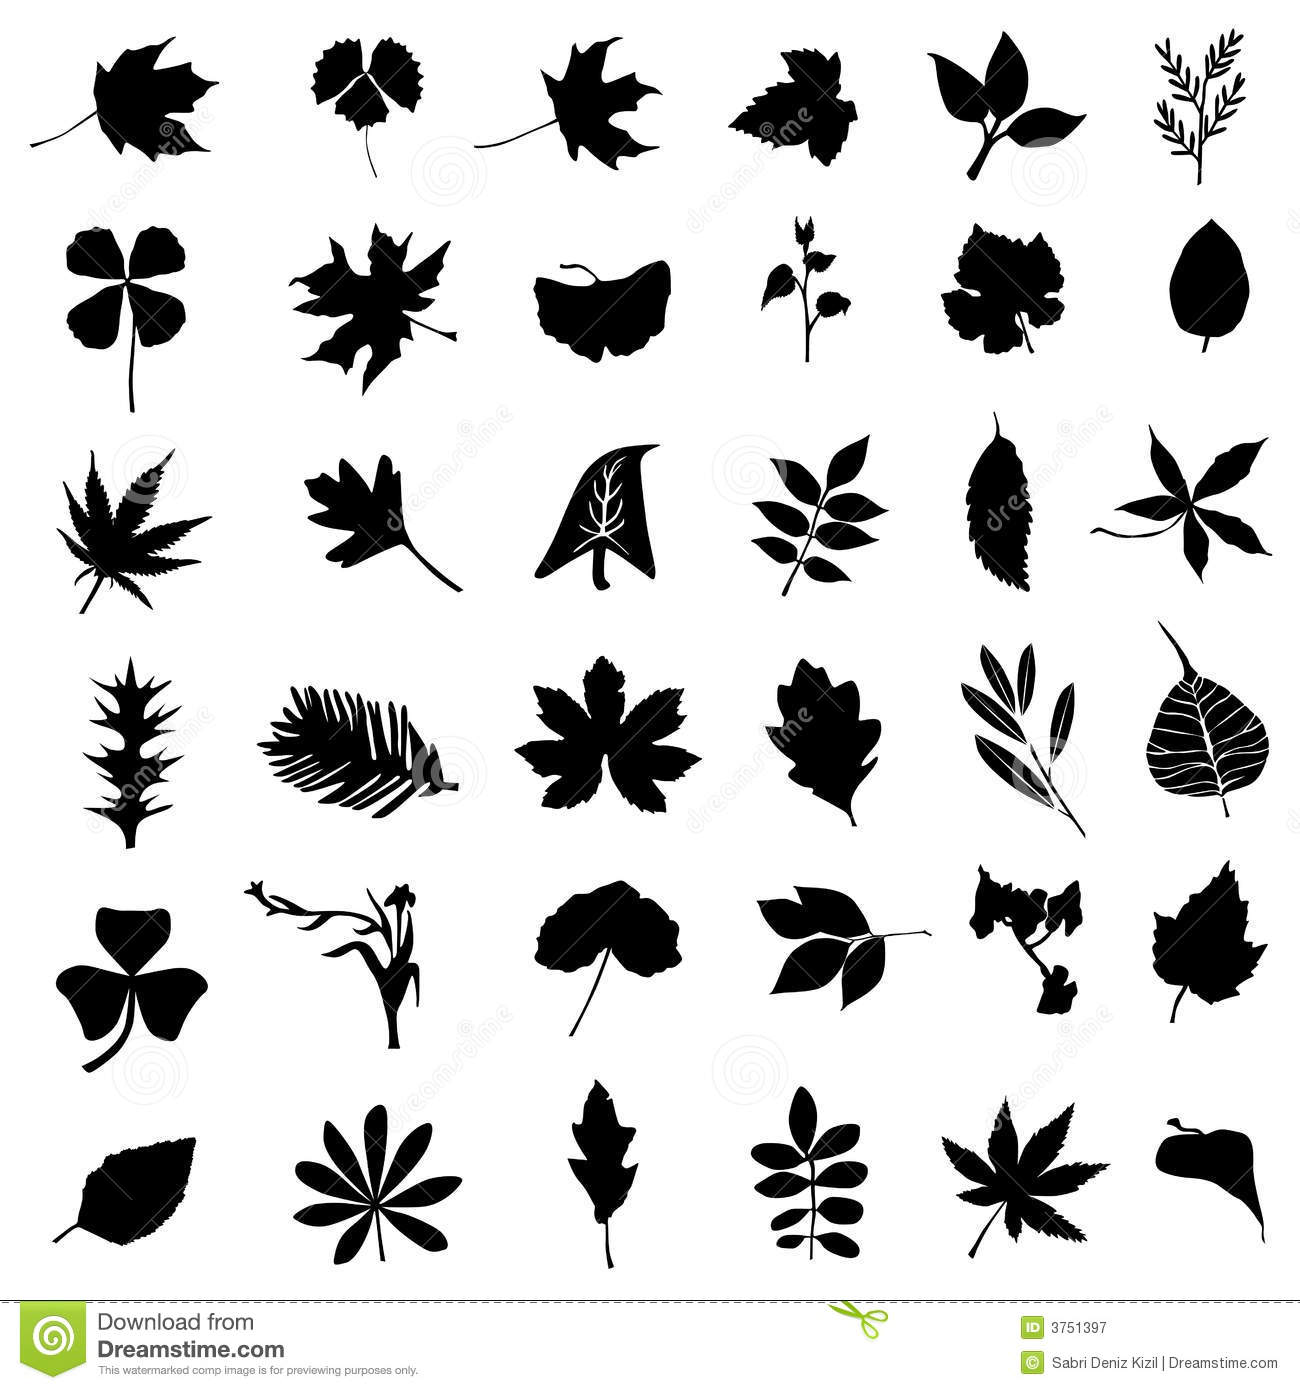 The Skull Mark 371571666 also Pas Clipart furthermore Shopkins Coloring Pages in addition Black And White Butterfly Tattoos Designs as well 1716642. on pictures of leaves cartoon